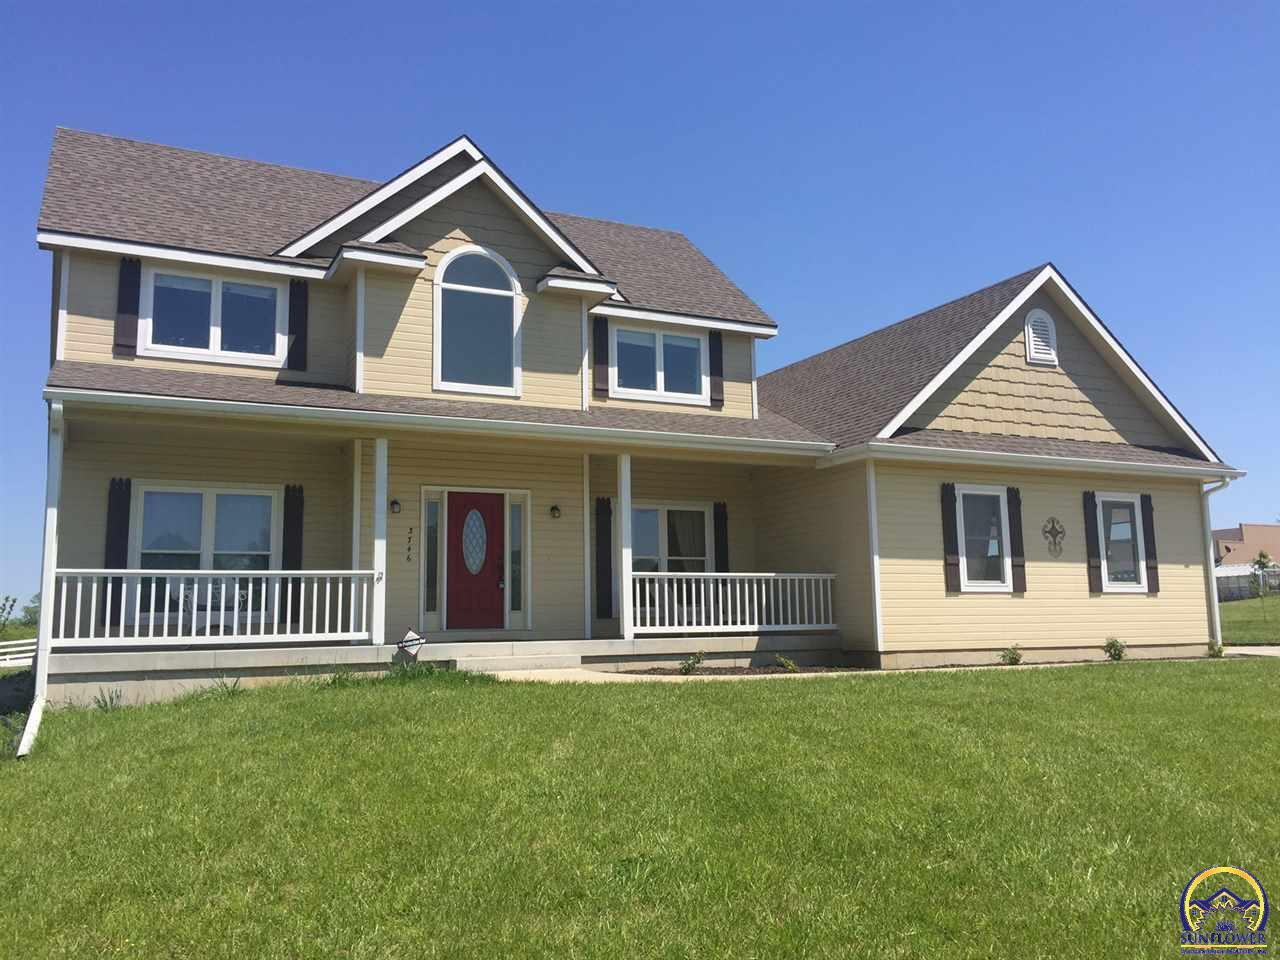 Topeka real estate 3746 nw menoken rd listing 192520 for Topeka home builders